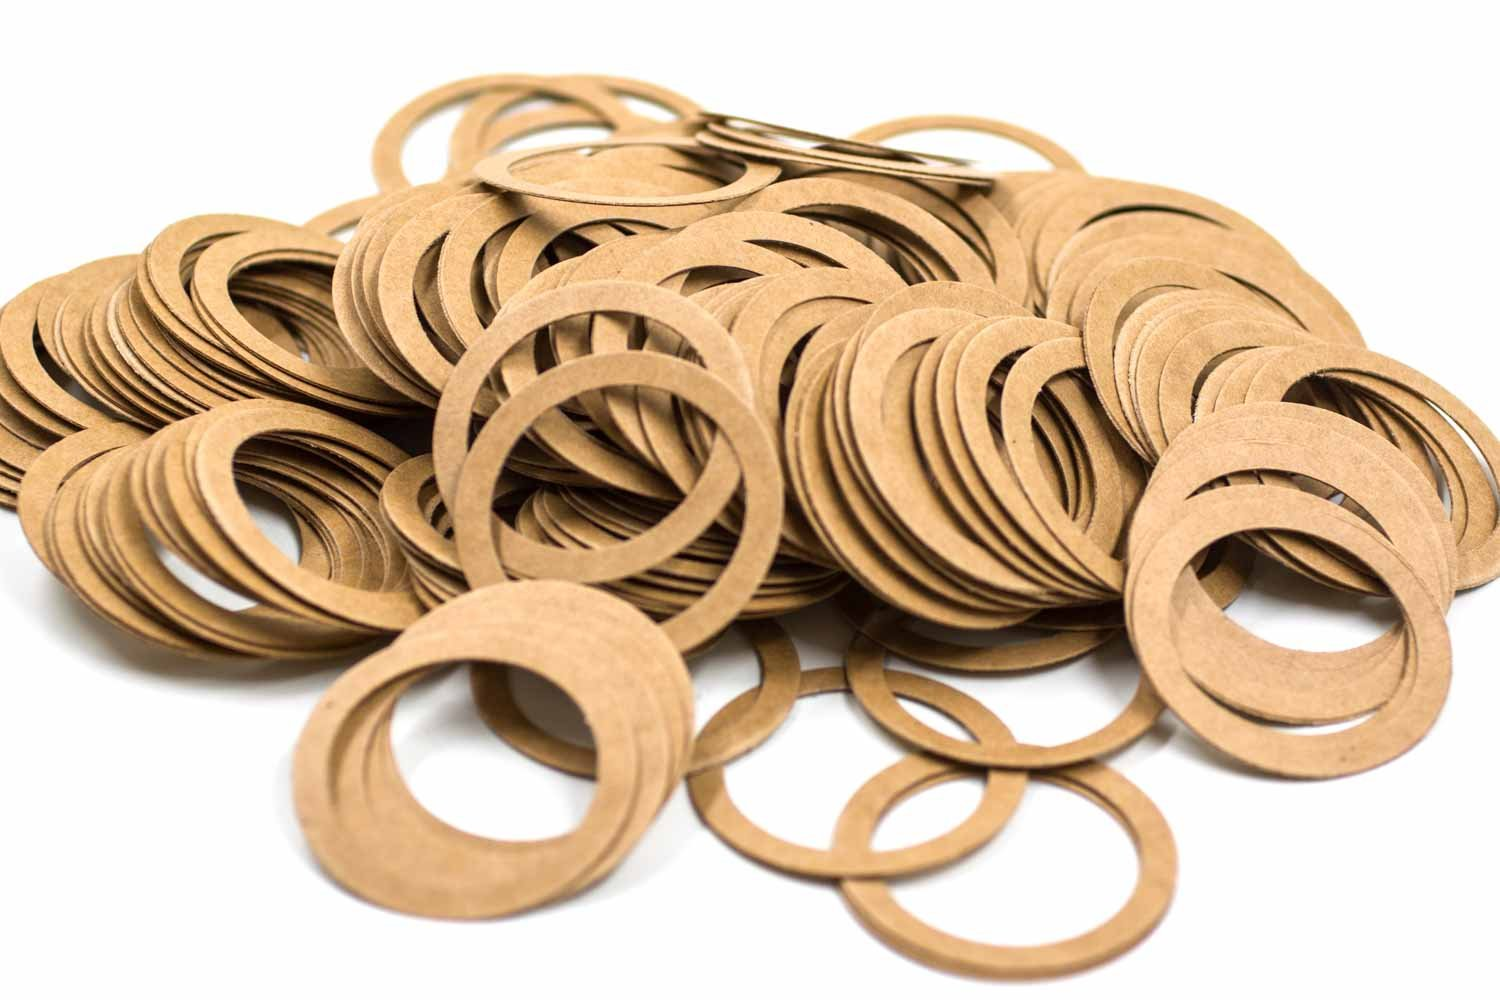 up to 110 /°C Made From Engineered High Quality Pressed Cardboard 200 Pieces Special Dimensions Flat Gasket Type PC 41 x 33 x 0.5 mm